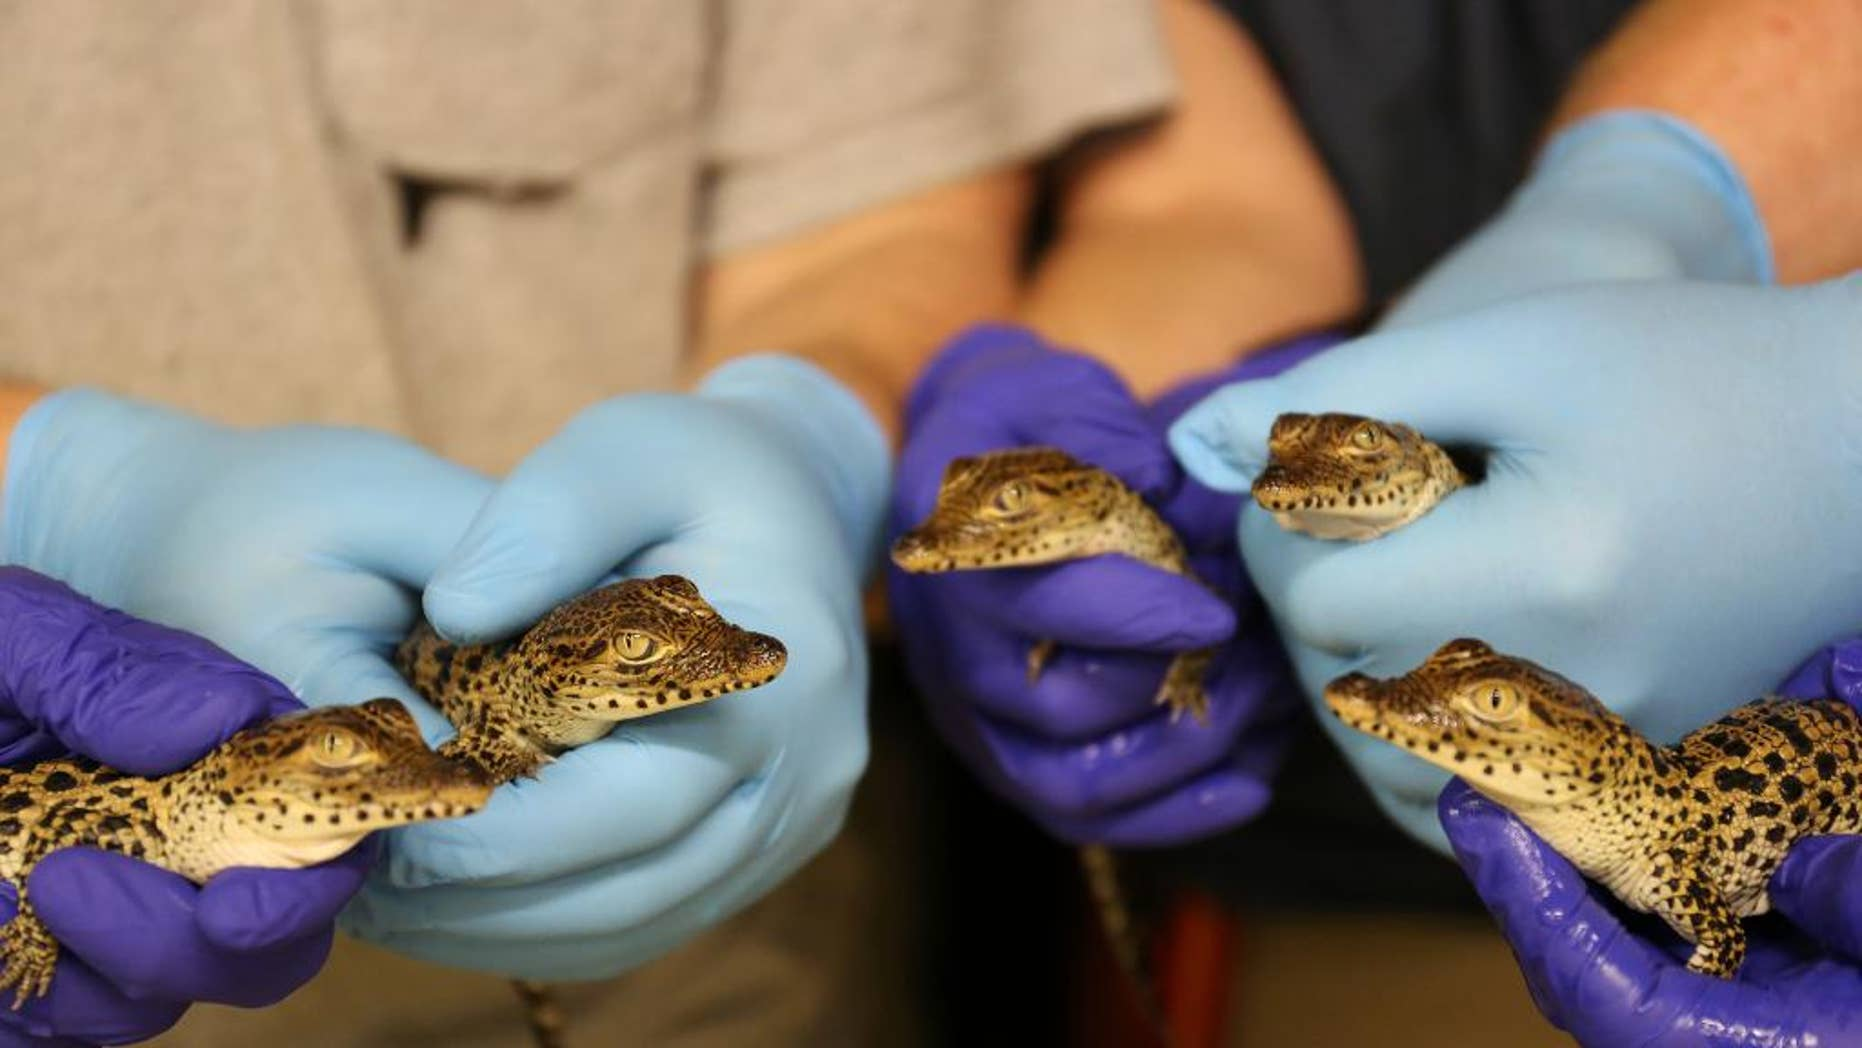 This handout photo provided by the Smithsonian's National Zoo shows five critically endangered Cuban crocodiles hatched at the National Zoo's Reptile Discovery Center between July 29 and Aug. 7. The eggs were laid by Dorothy, a 57-year-old genetically valuable crocodile.  (Smithsonian's National Zoo/Amy Enchelmeyer via AP)